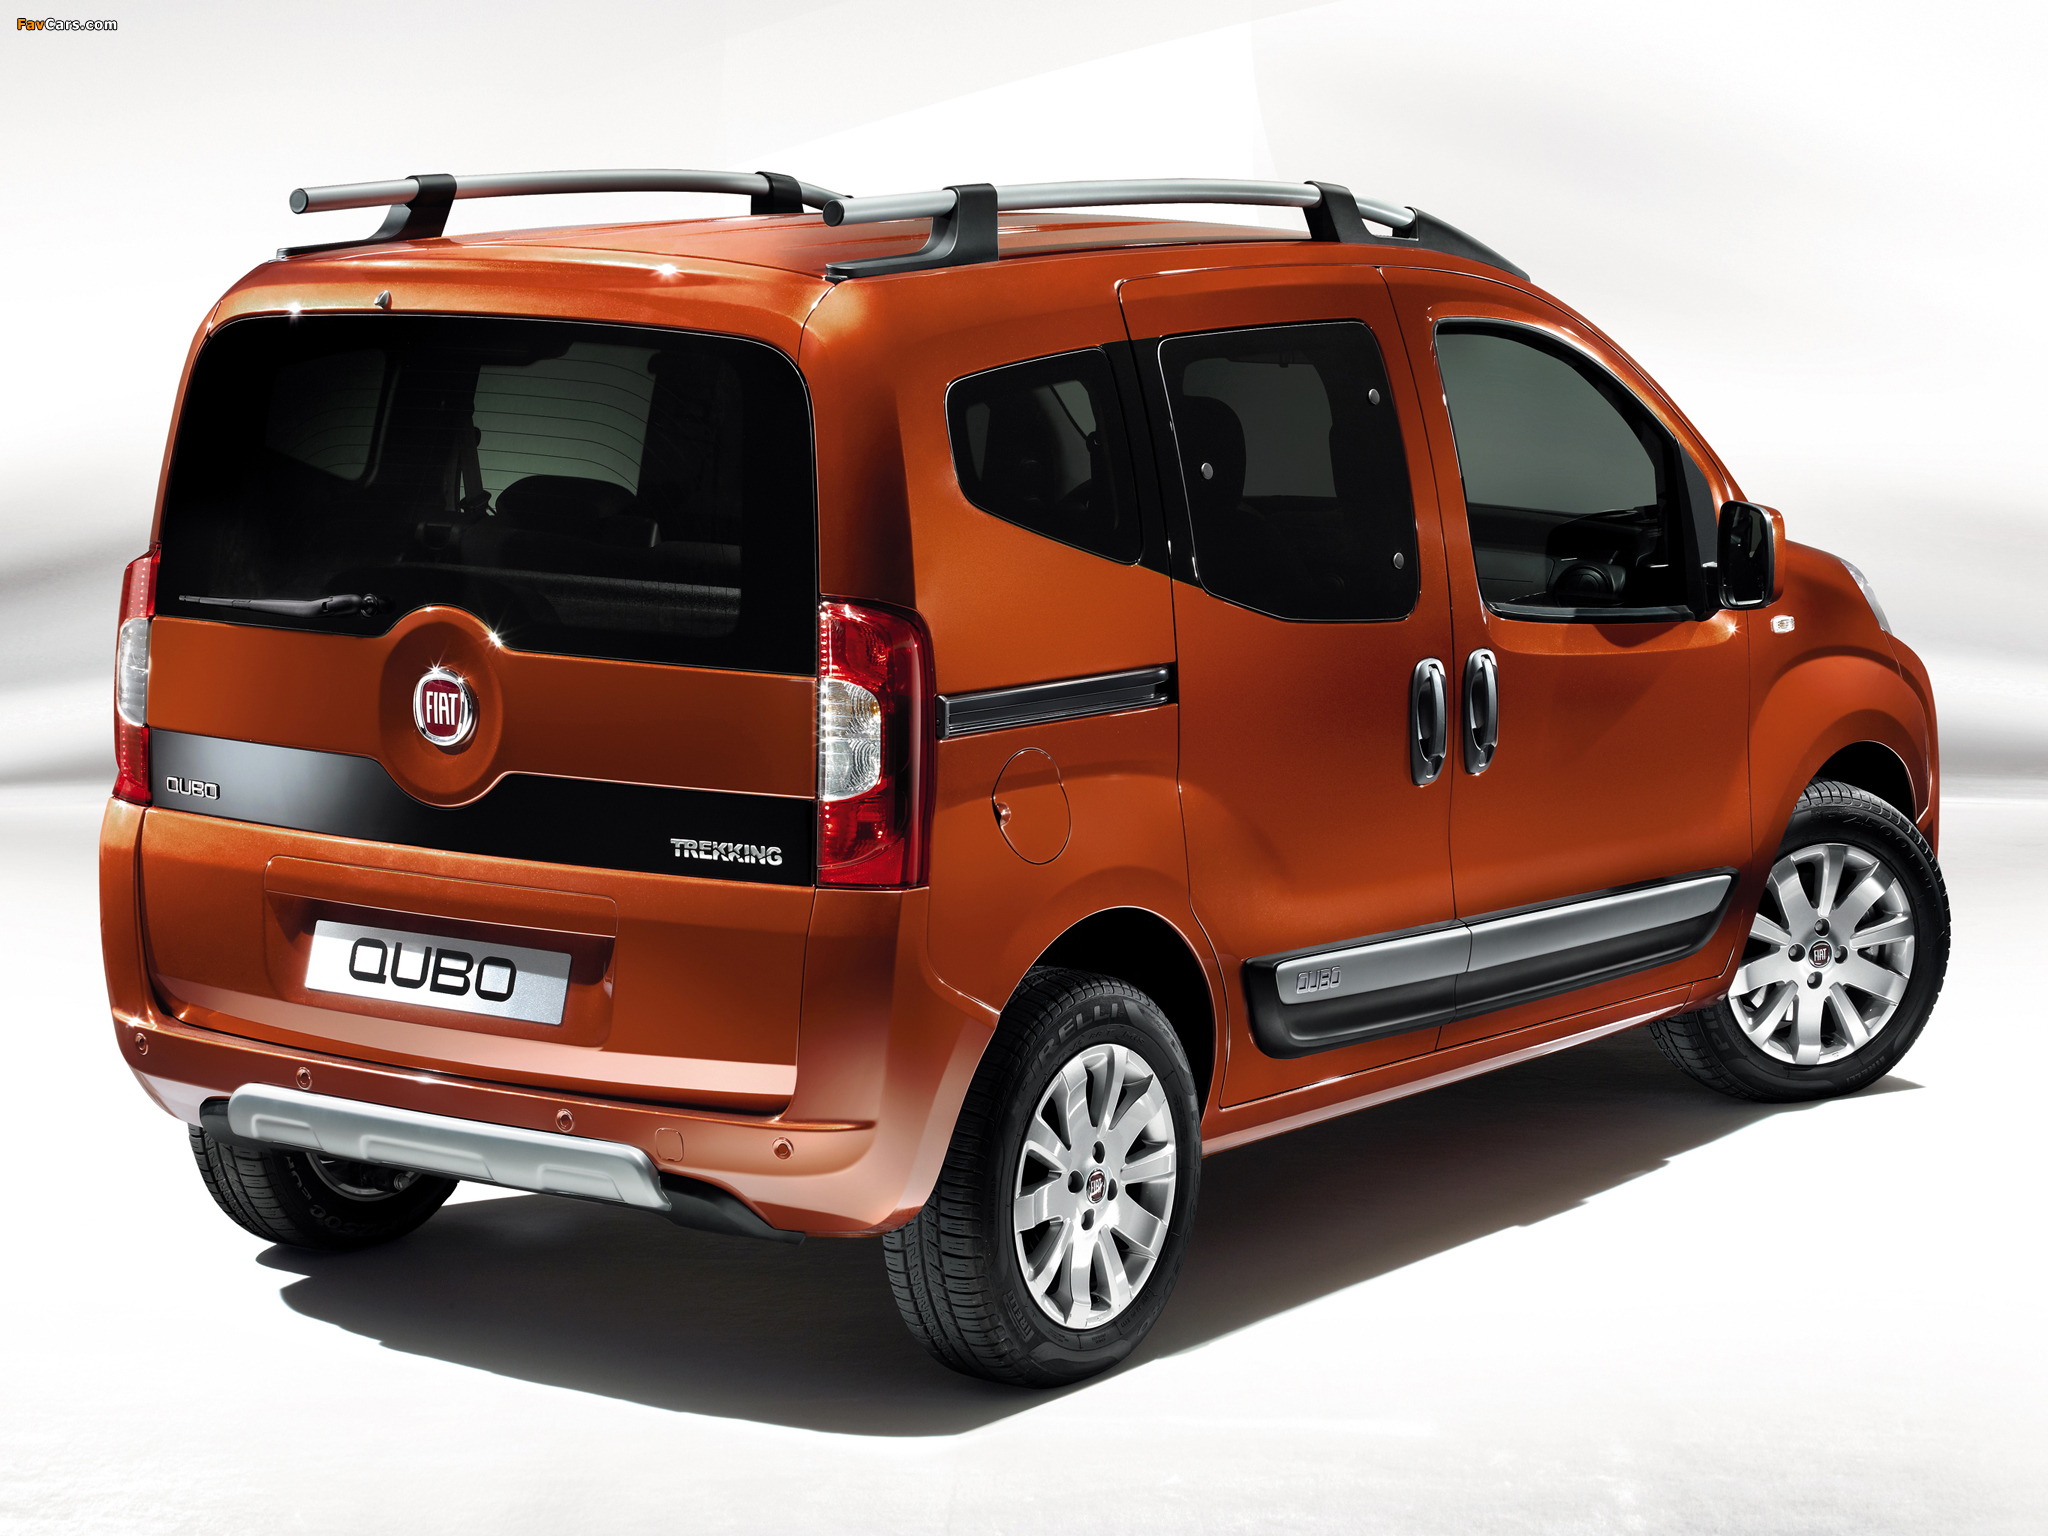 fiat qubo trekking 225 2011 wallpapers 2048x1536. Black Bedroom Furniture Sets. Home Design Ideas